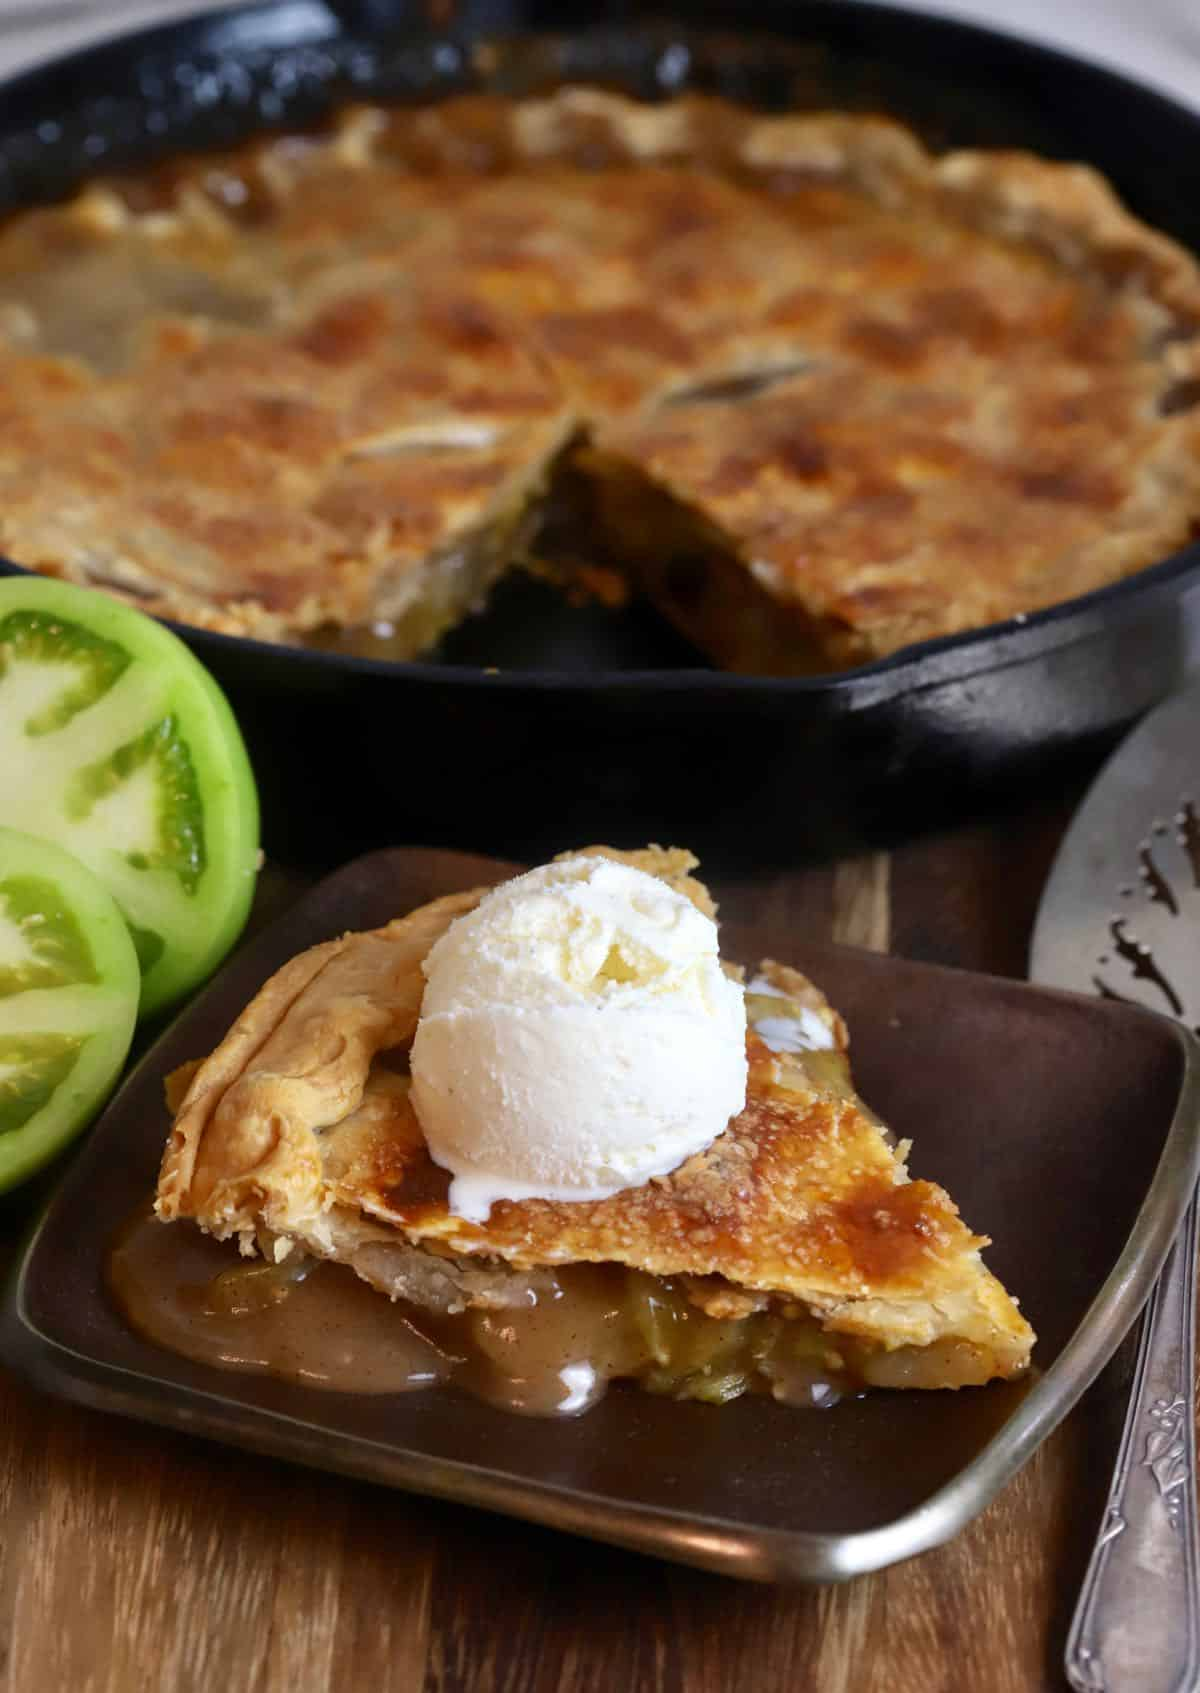 A cast-iron skillet with a slice of tomato pie cut out topped with a scoop of vanilla ice cream.